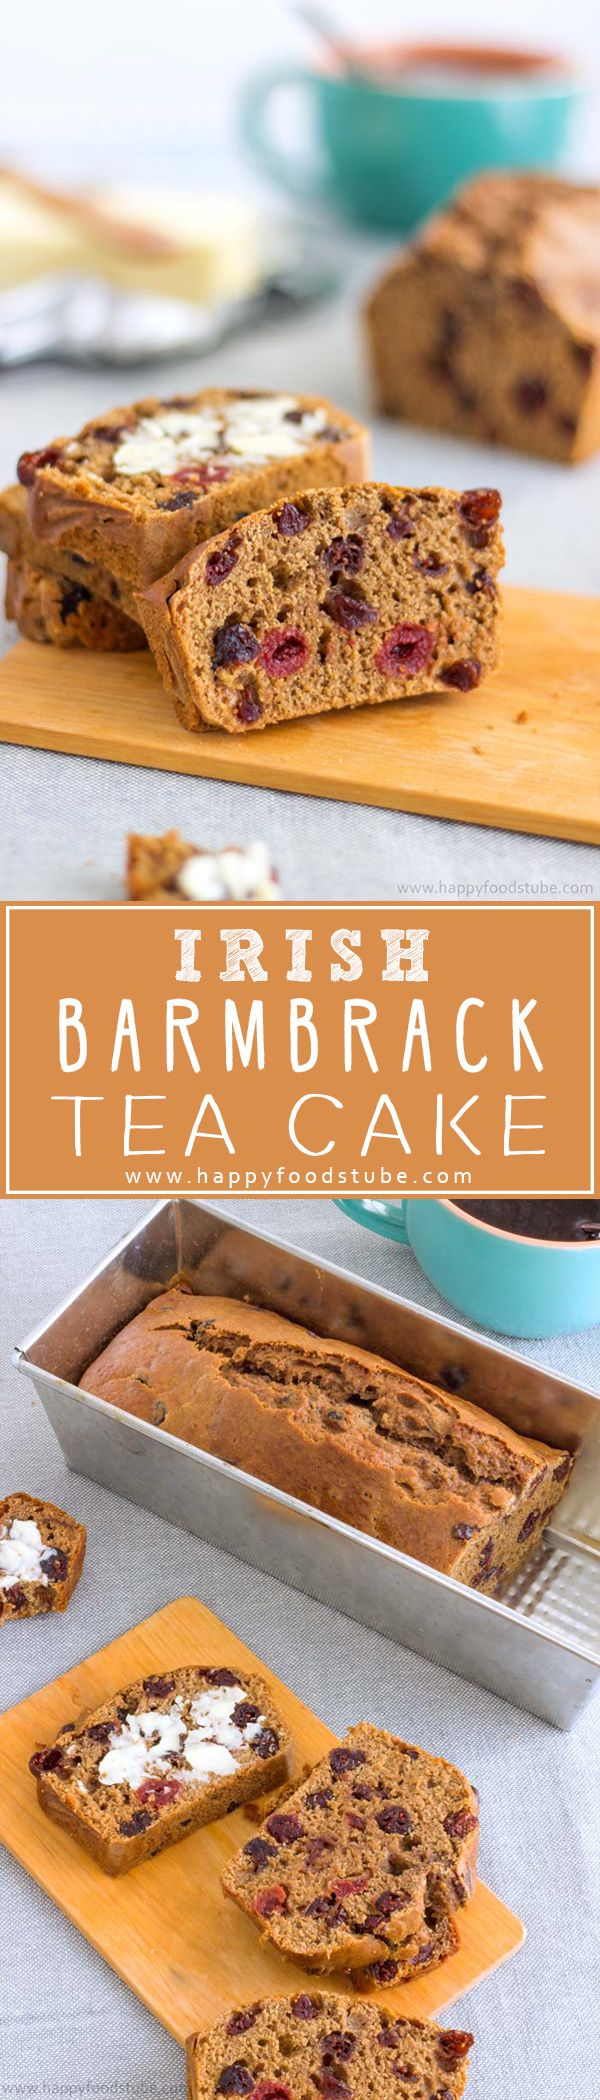 Irish Barmbrack Tea Cake or Irish Tea Brack. Traditional Halloween treat in Ireland. Dried fruit & spices make it extra delicious! Try my yeast-free recipe! | happyfoodstube.com